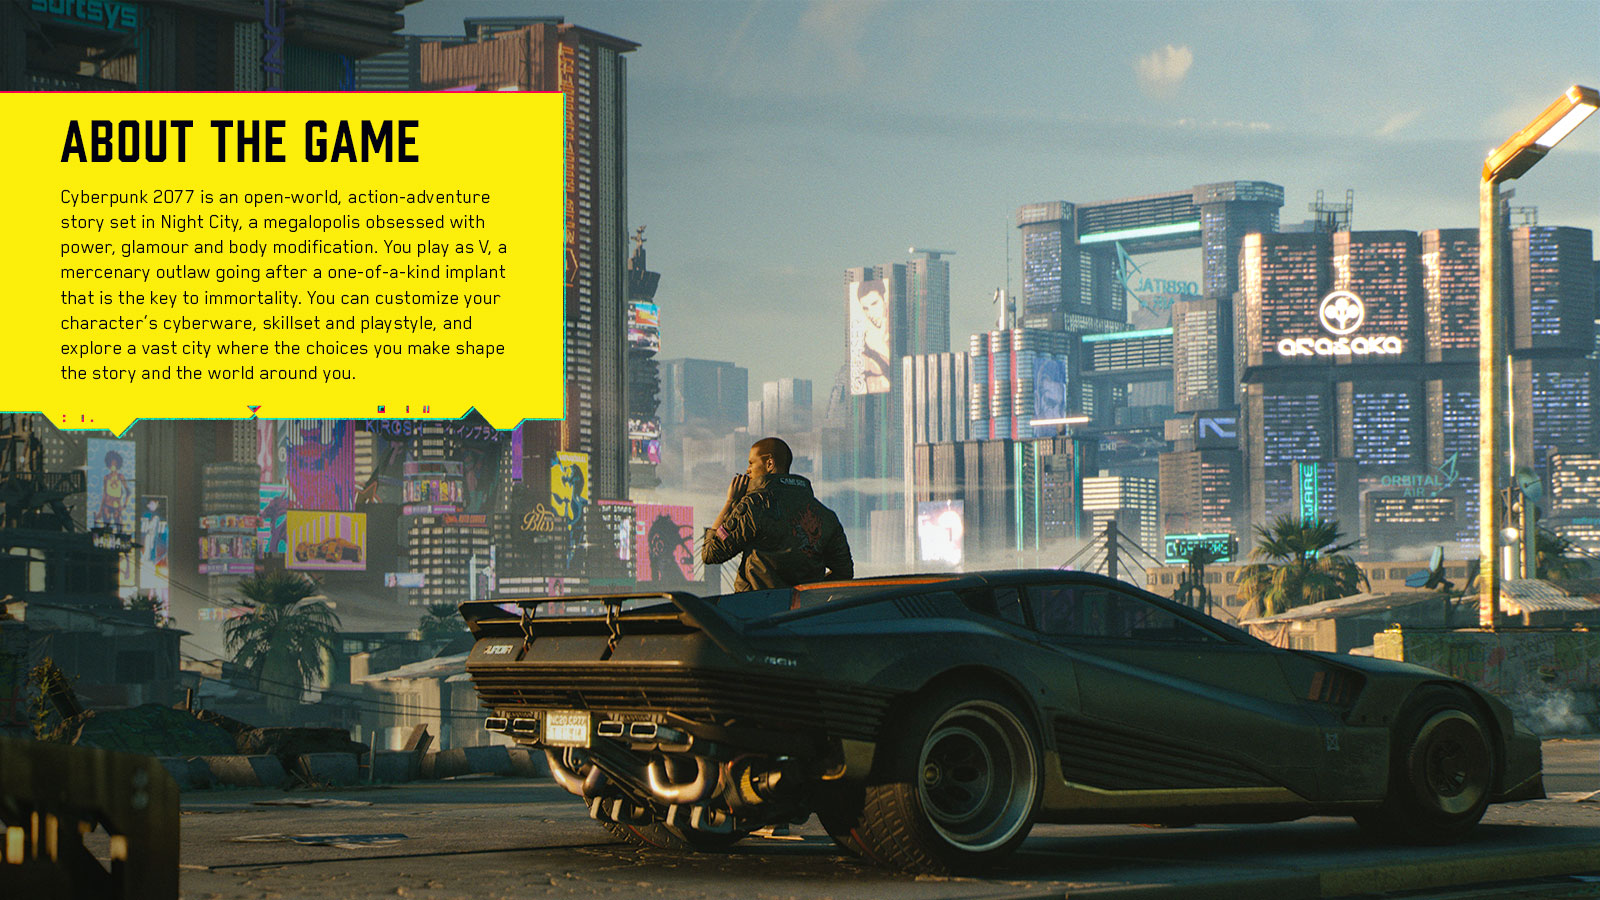 Cyberpunk 2077 is an open-world, action-adventure story set in Night City, a megalopolis obsessed with power, glamour and body modification. You play as V, a mercenary outlaw going after a one-of-a-kind implant that is the key to immortality. You can customize your character's cyberware, skillset and playstyle, and explore a vast city where the choices you make shape the story and the world around you.